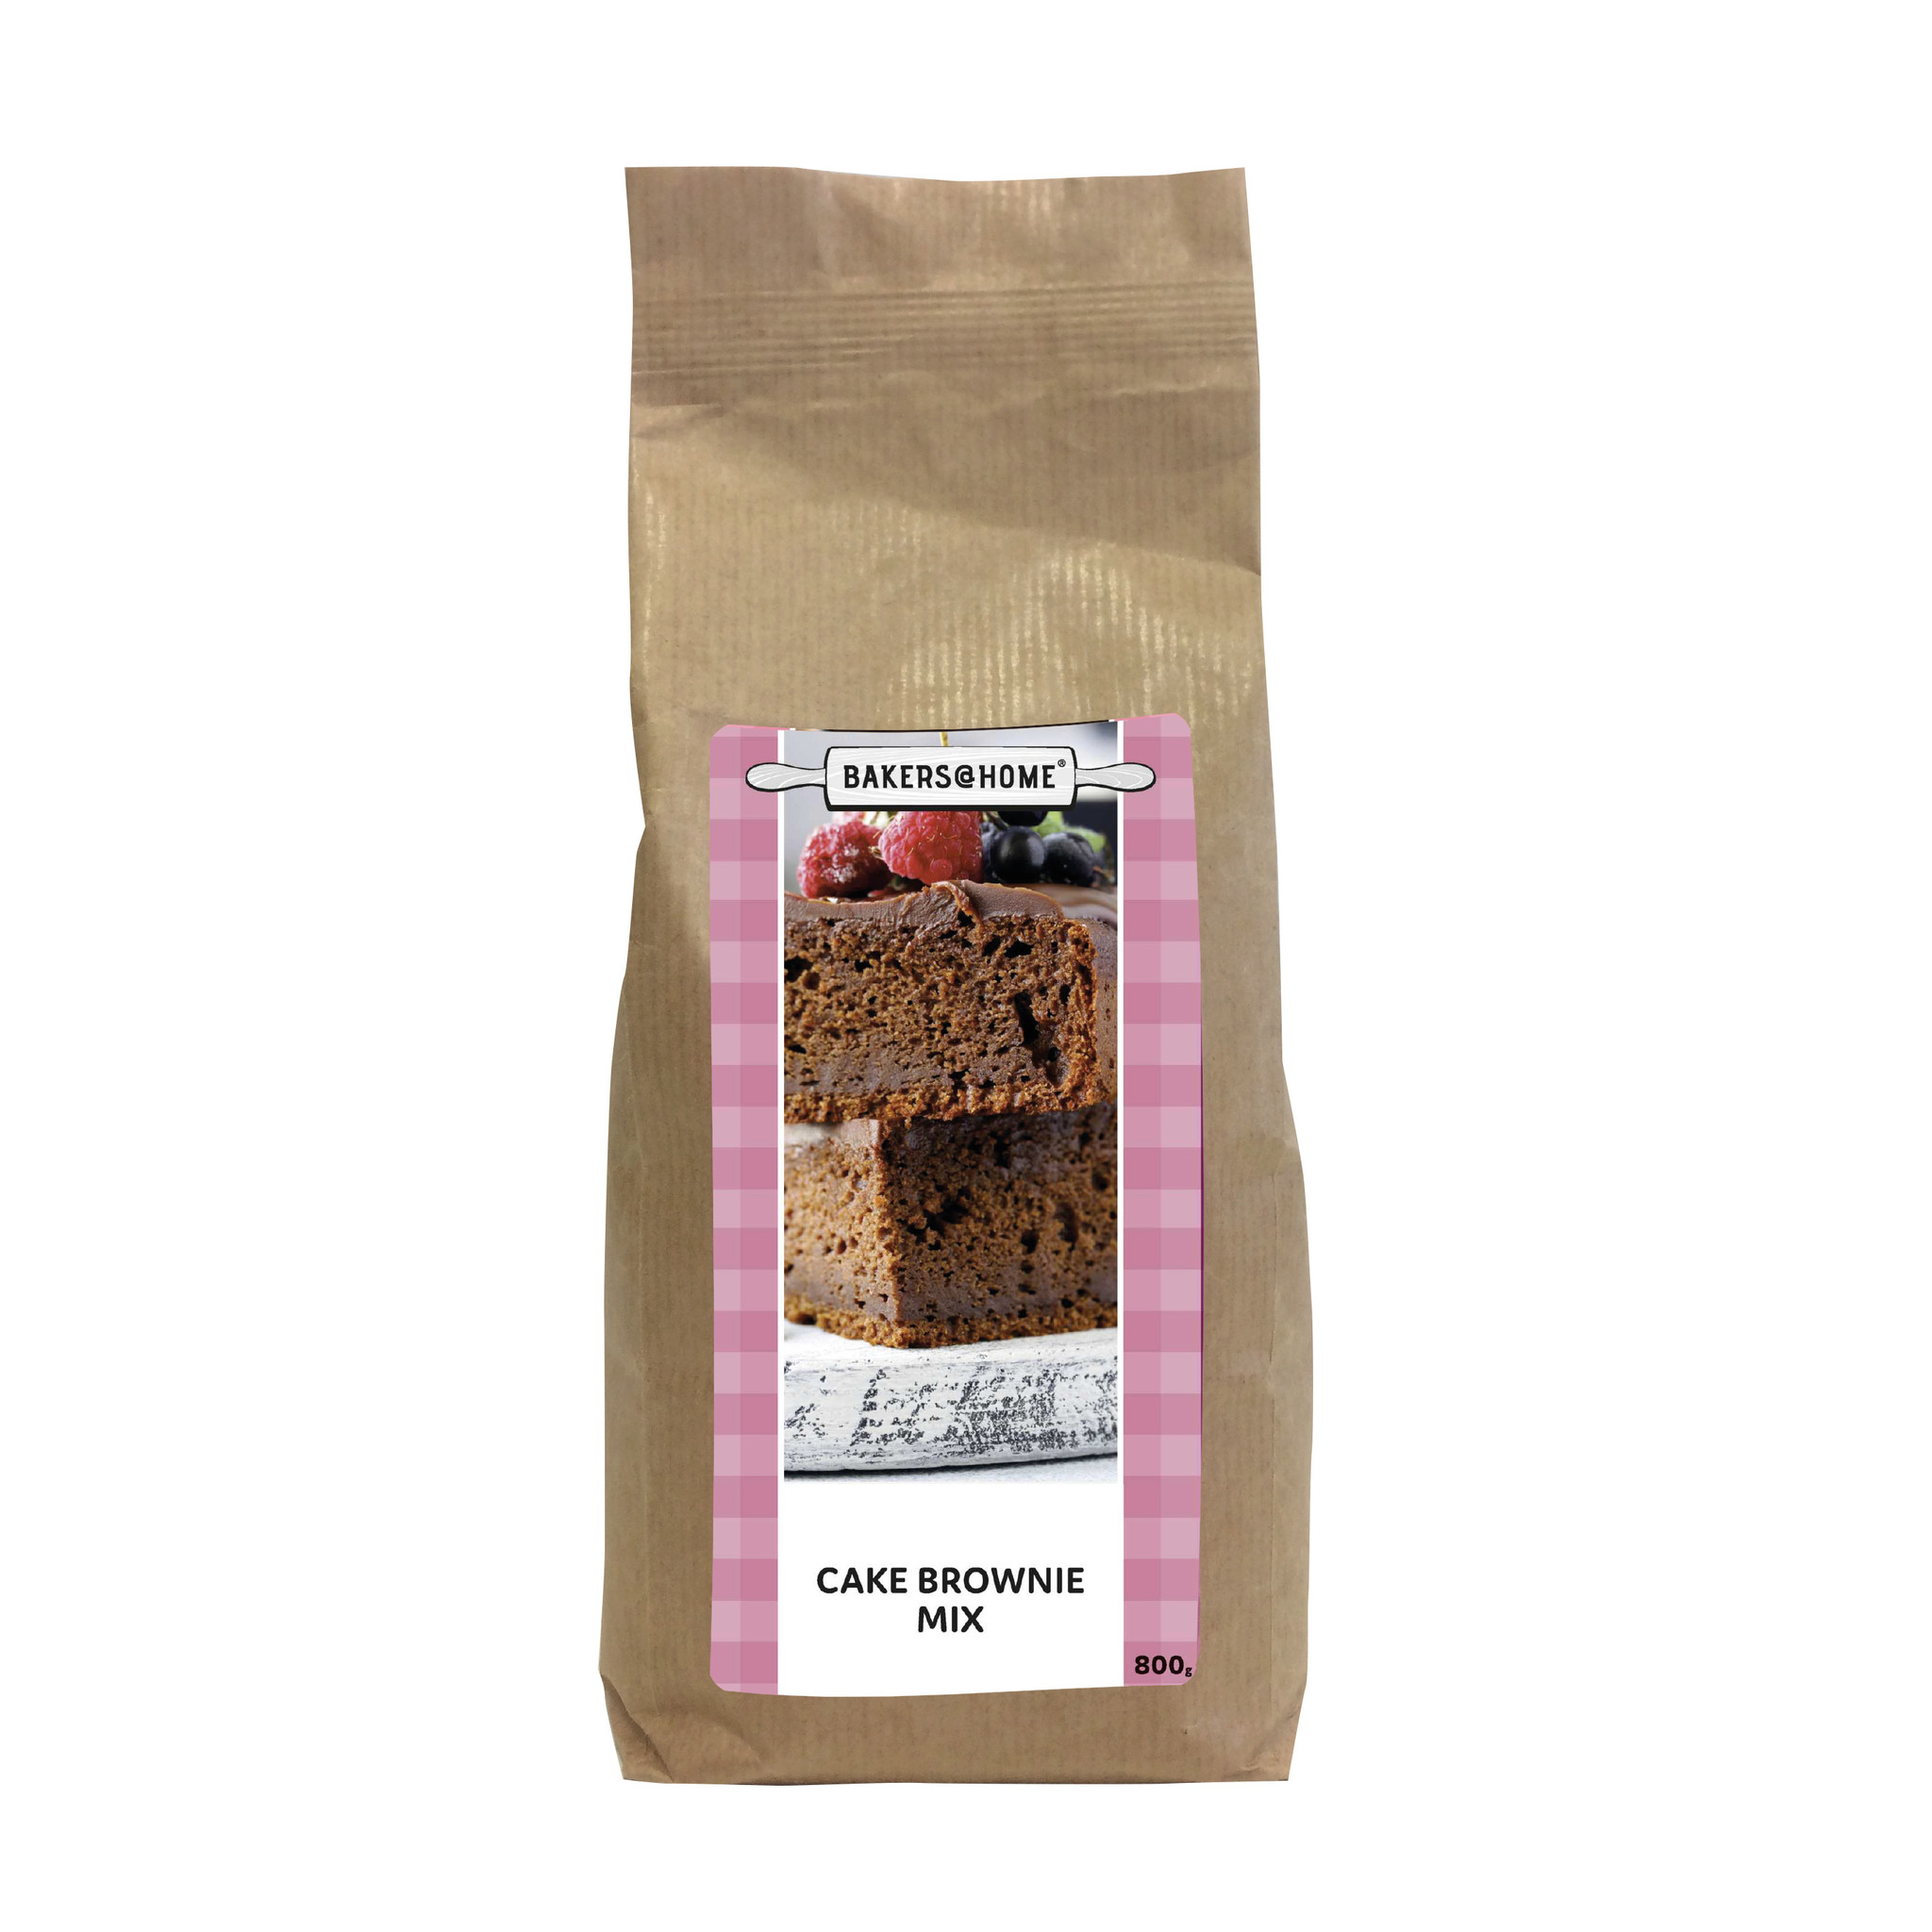 Bakers@Home Cake brownie mix